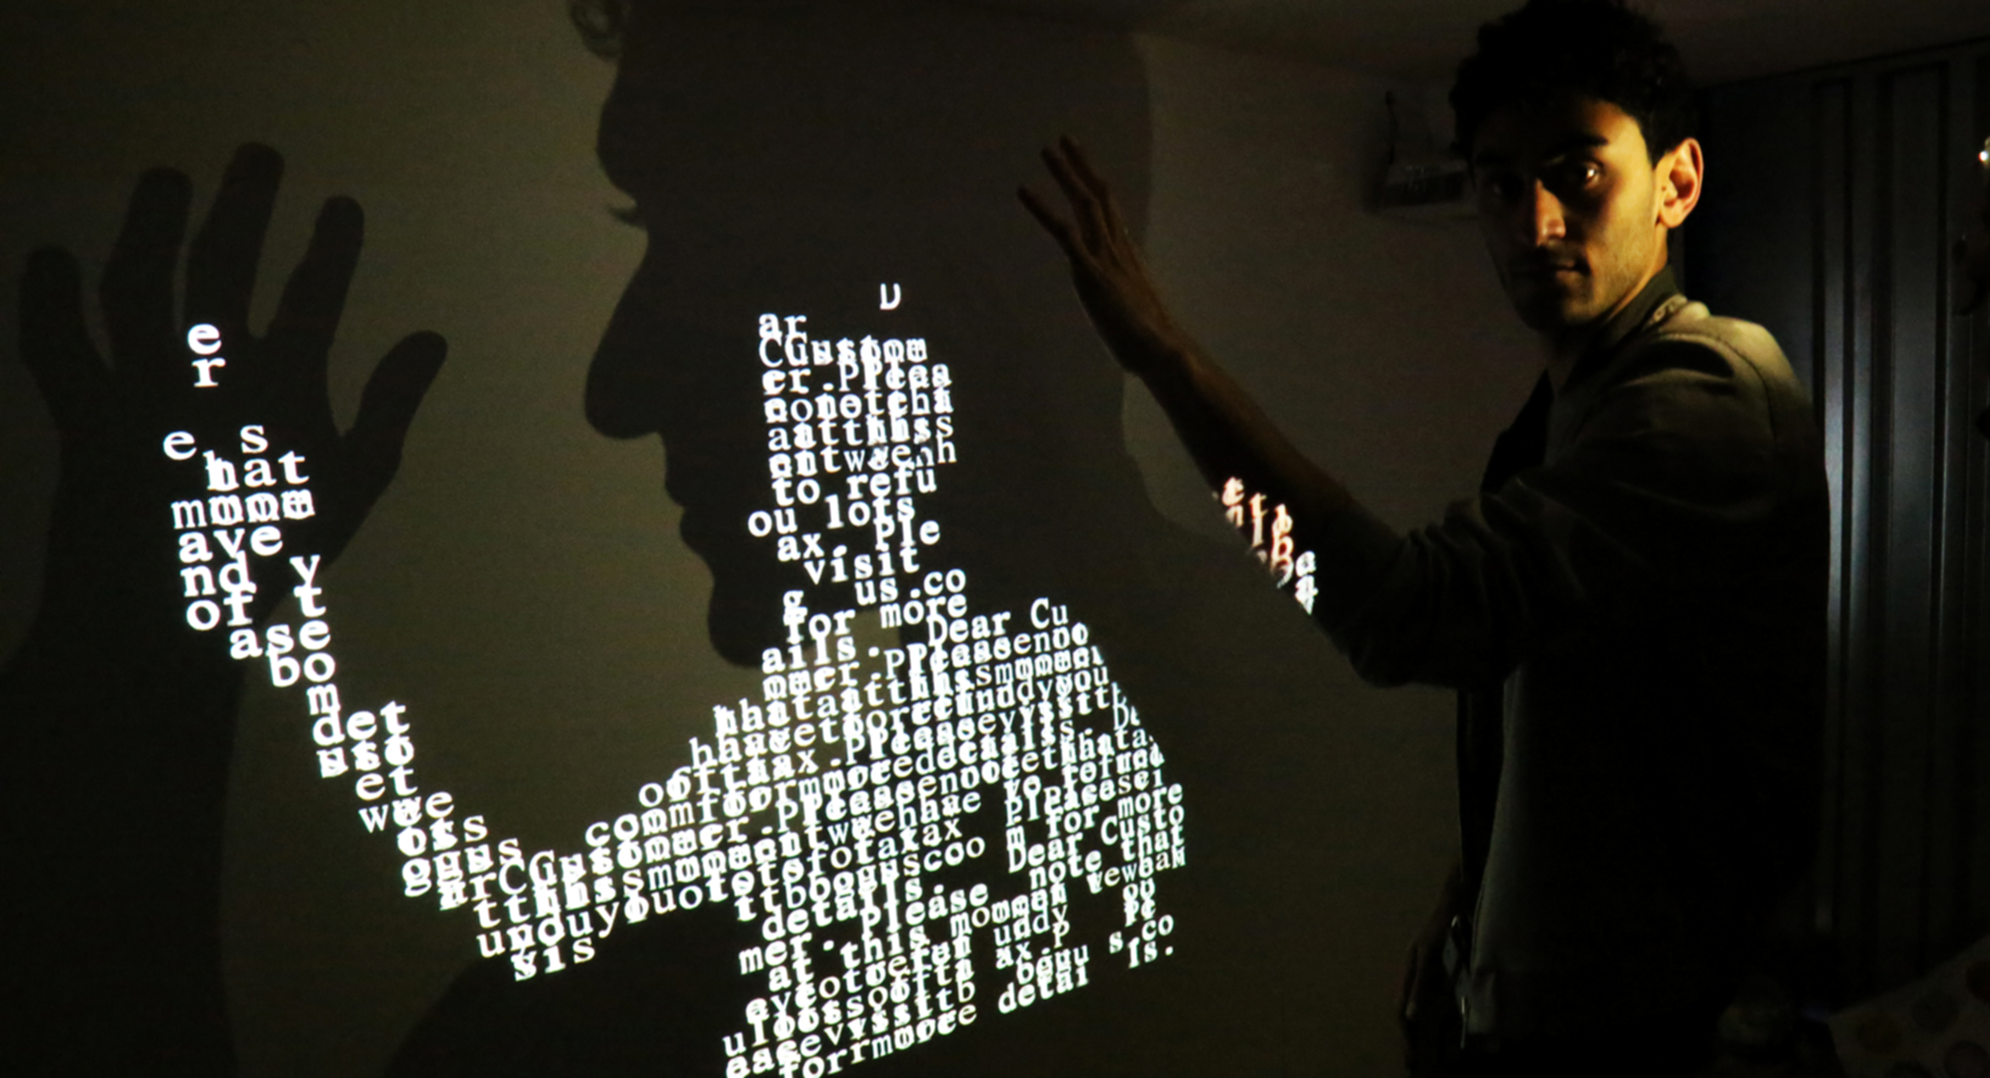 This artist gave out all his login details and passwords to the public. Here's why